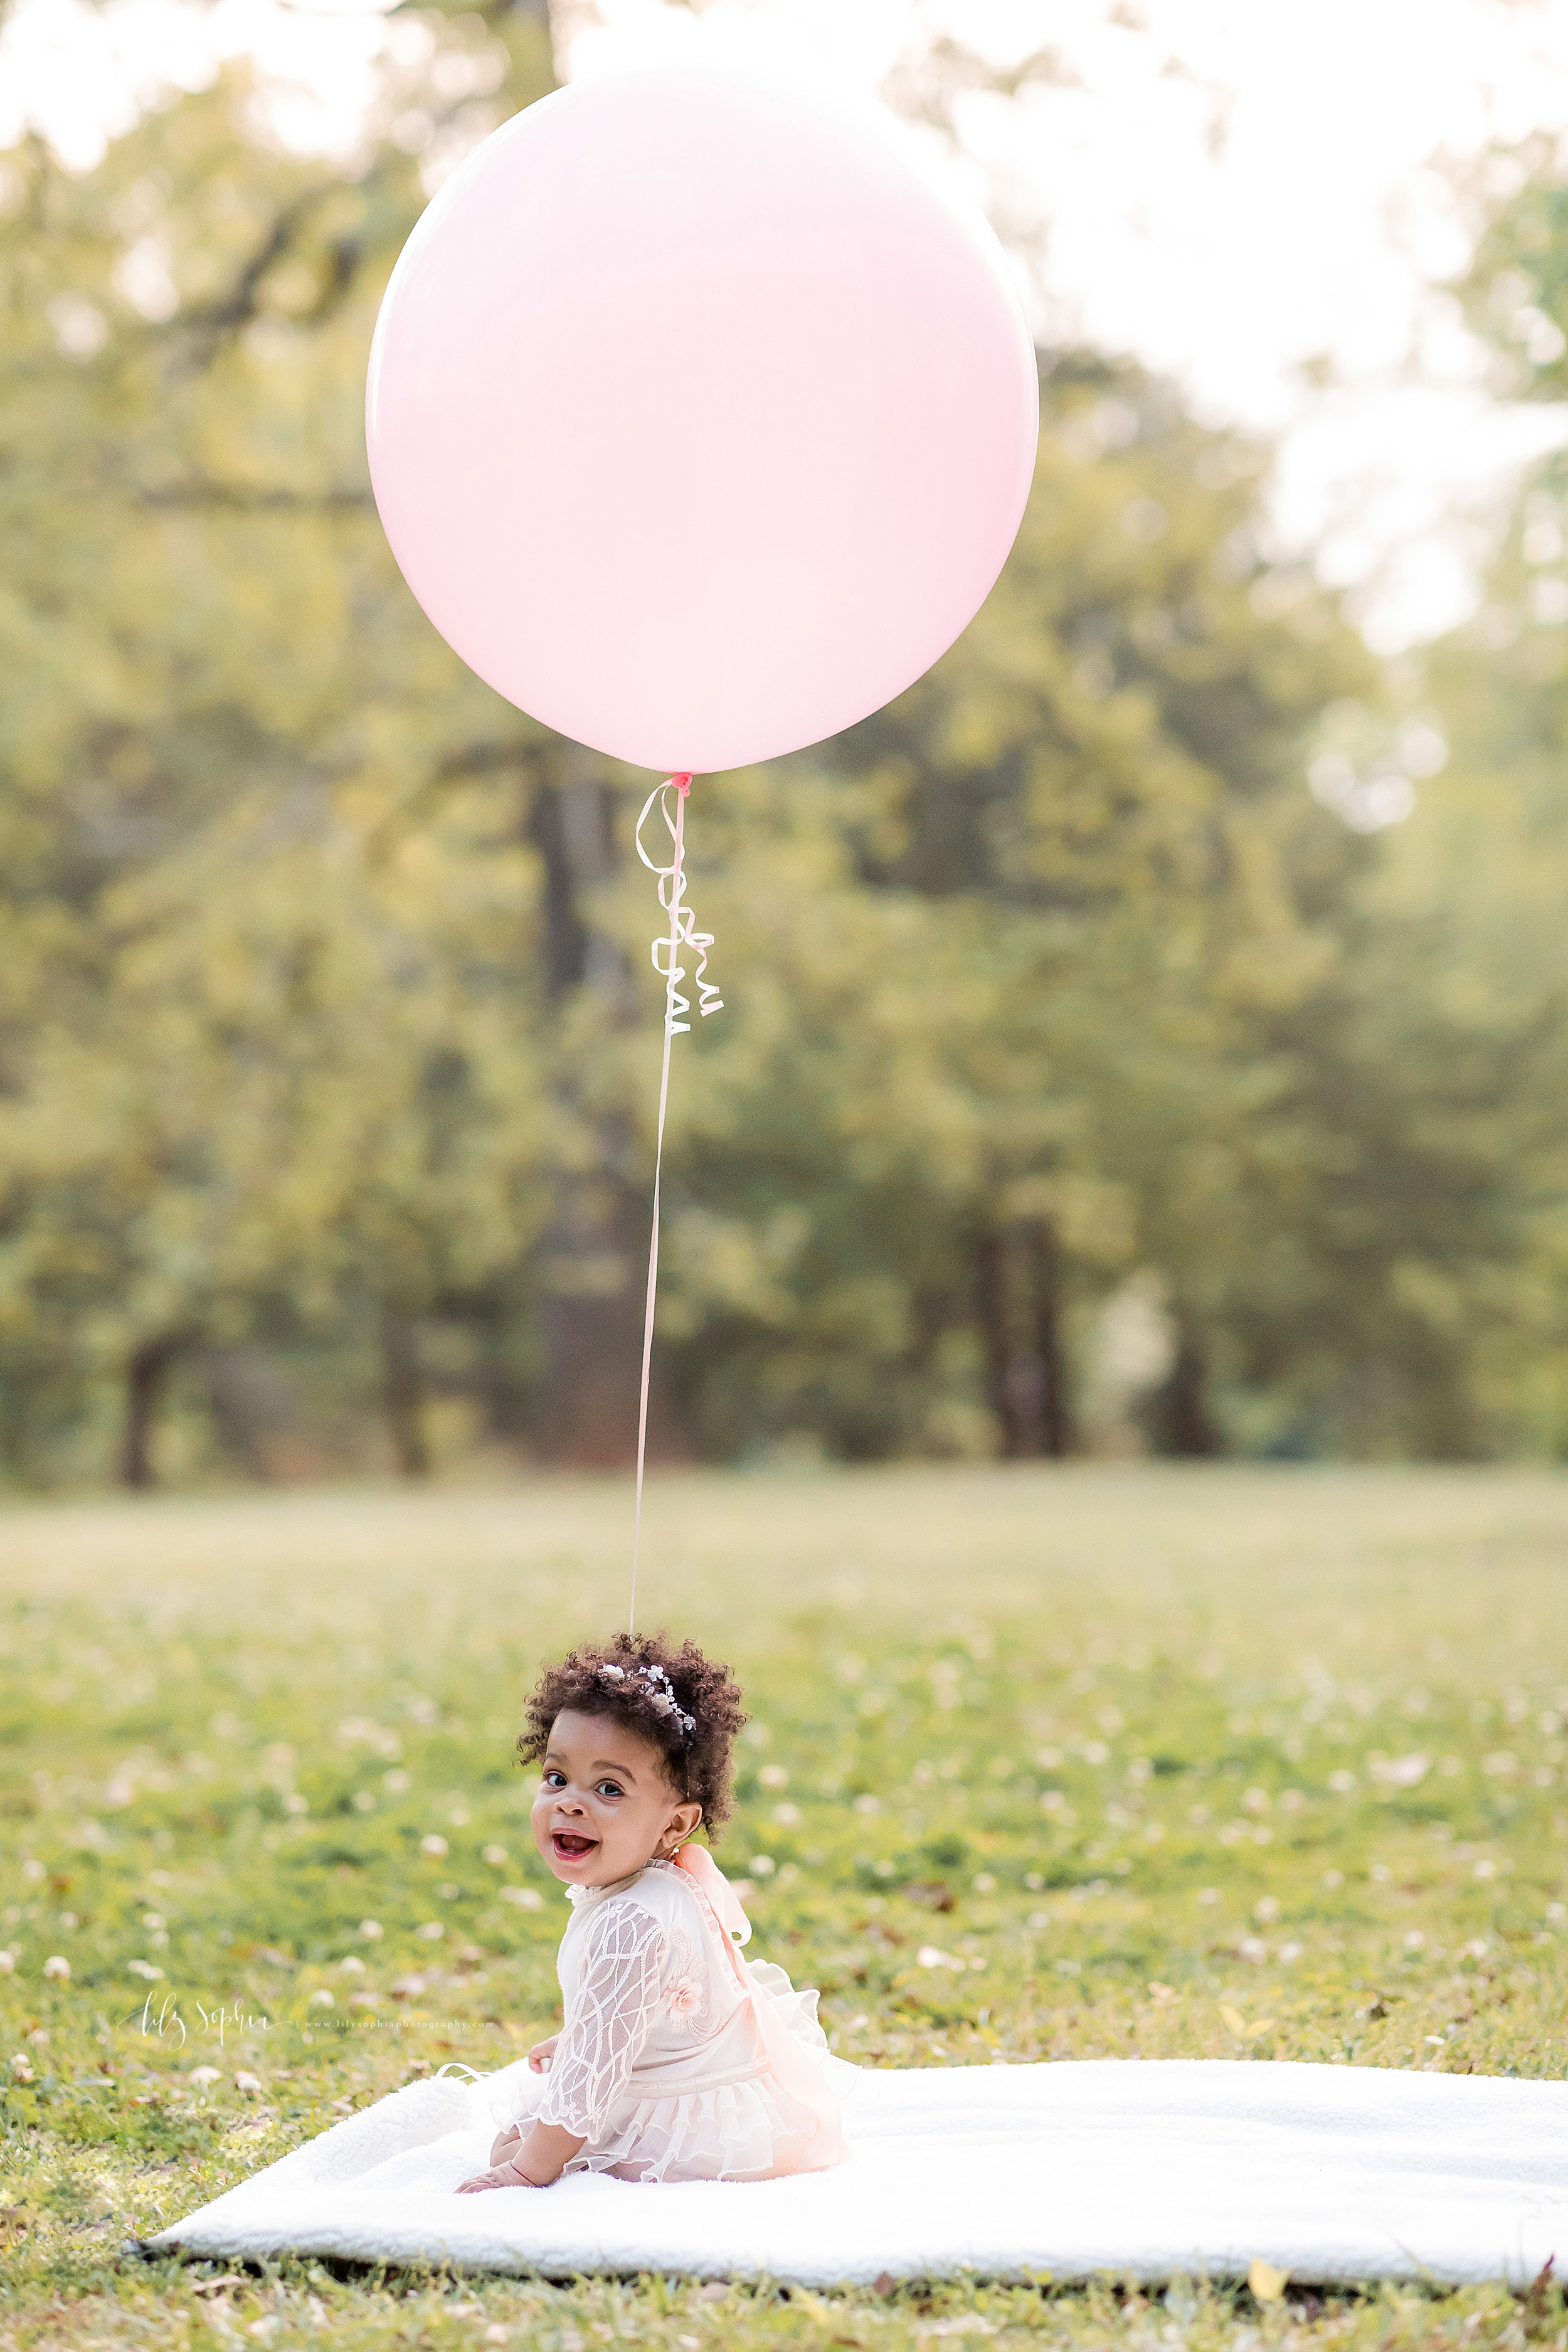 Image of an African-American one year old sitting on a white blanket in a park in Atlanta while holding a large pink balloon for her first birthday.  The little girl is turning her head over her left shoulder as the balloon looms above her head.